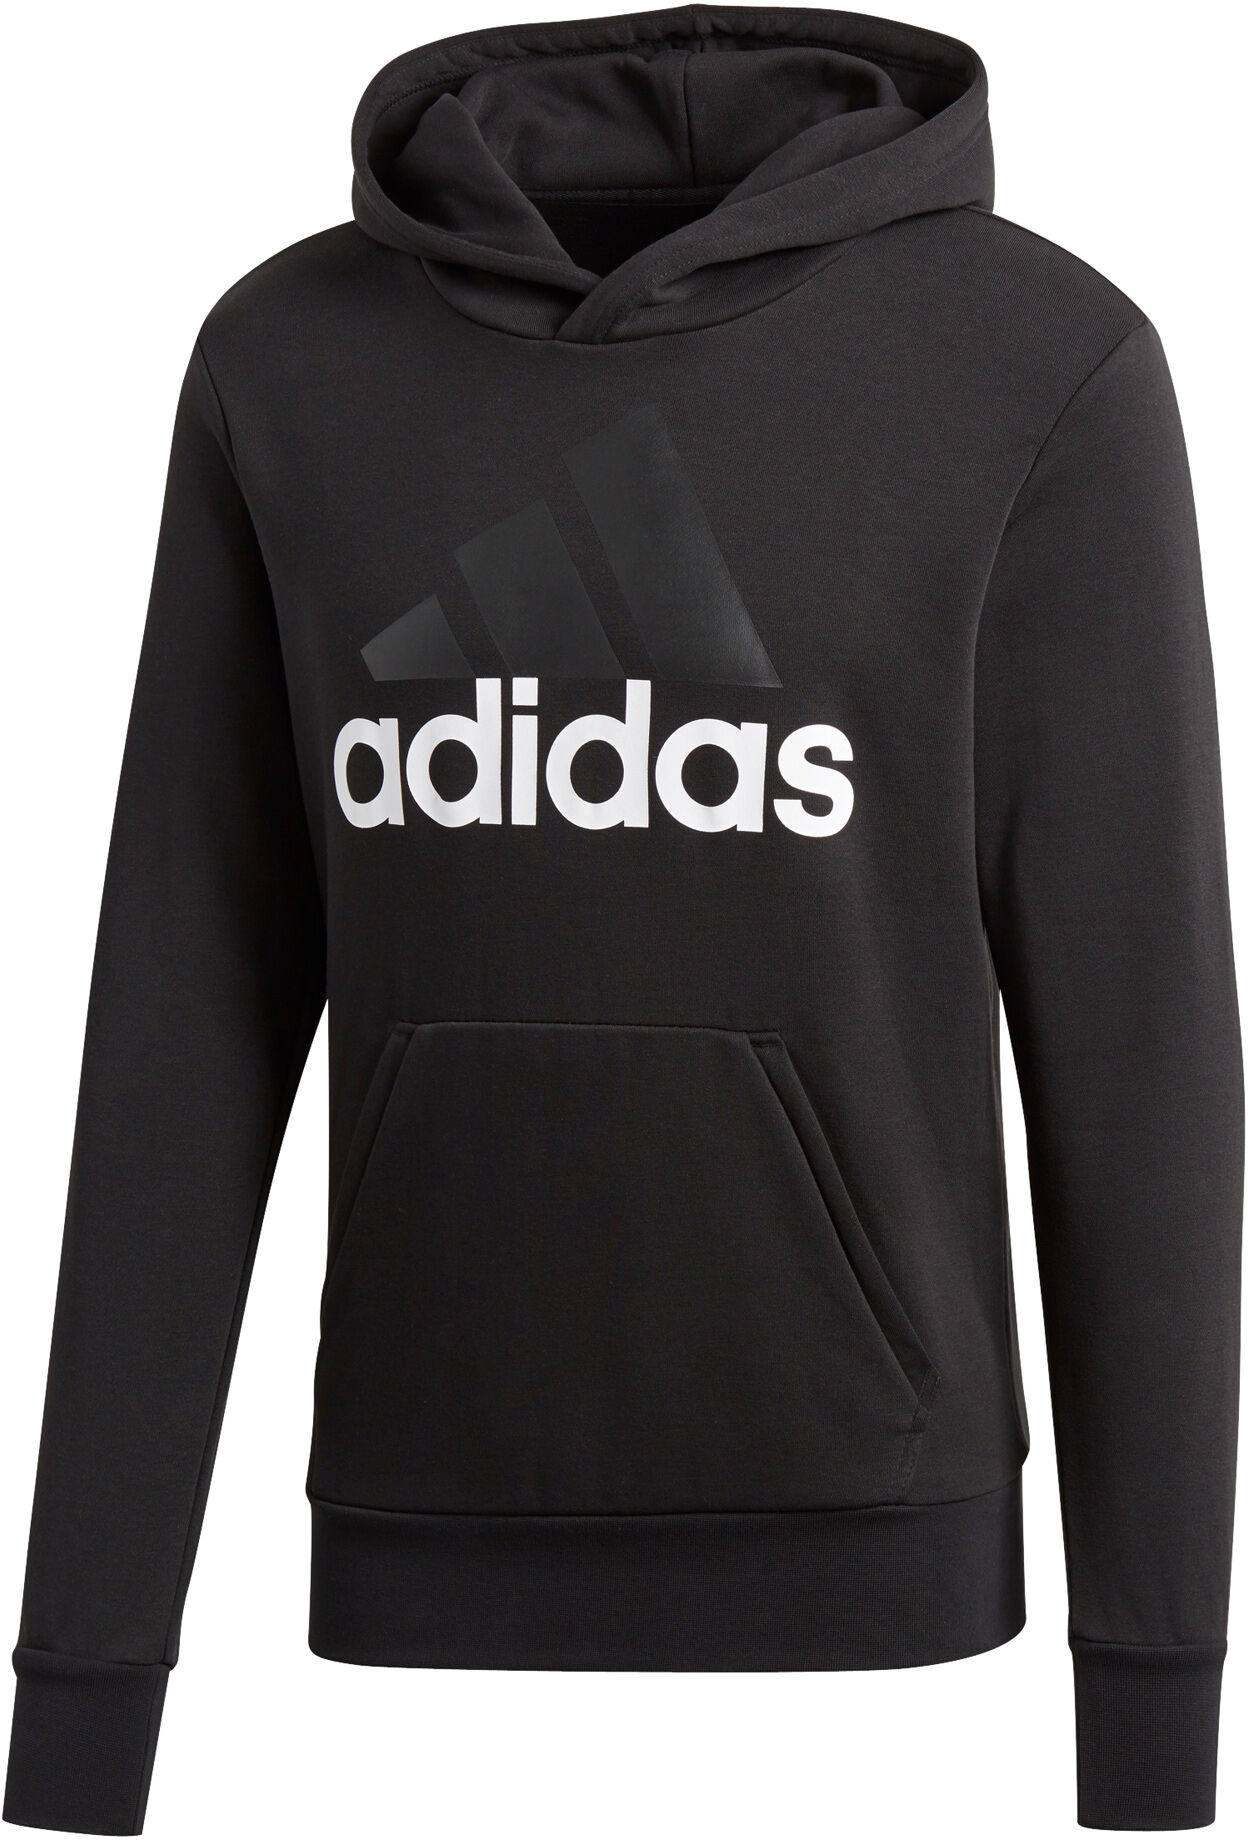 adidas W SID OH Hoodie   sportisimo.at